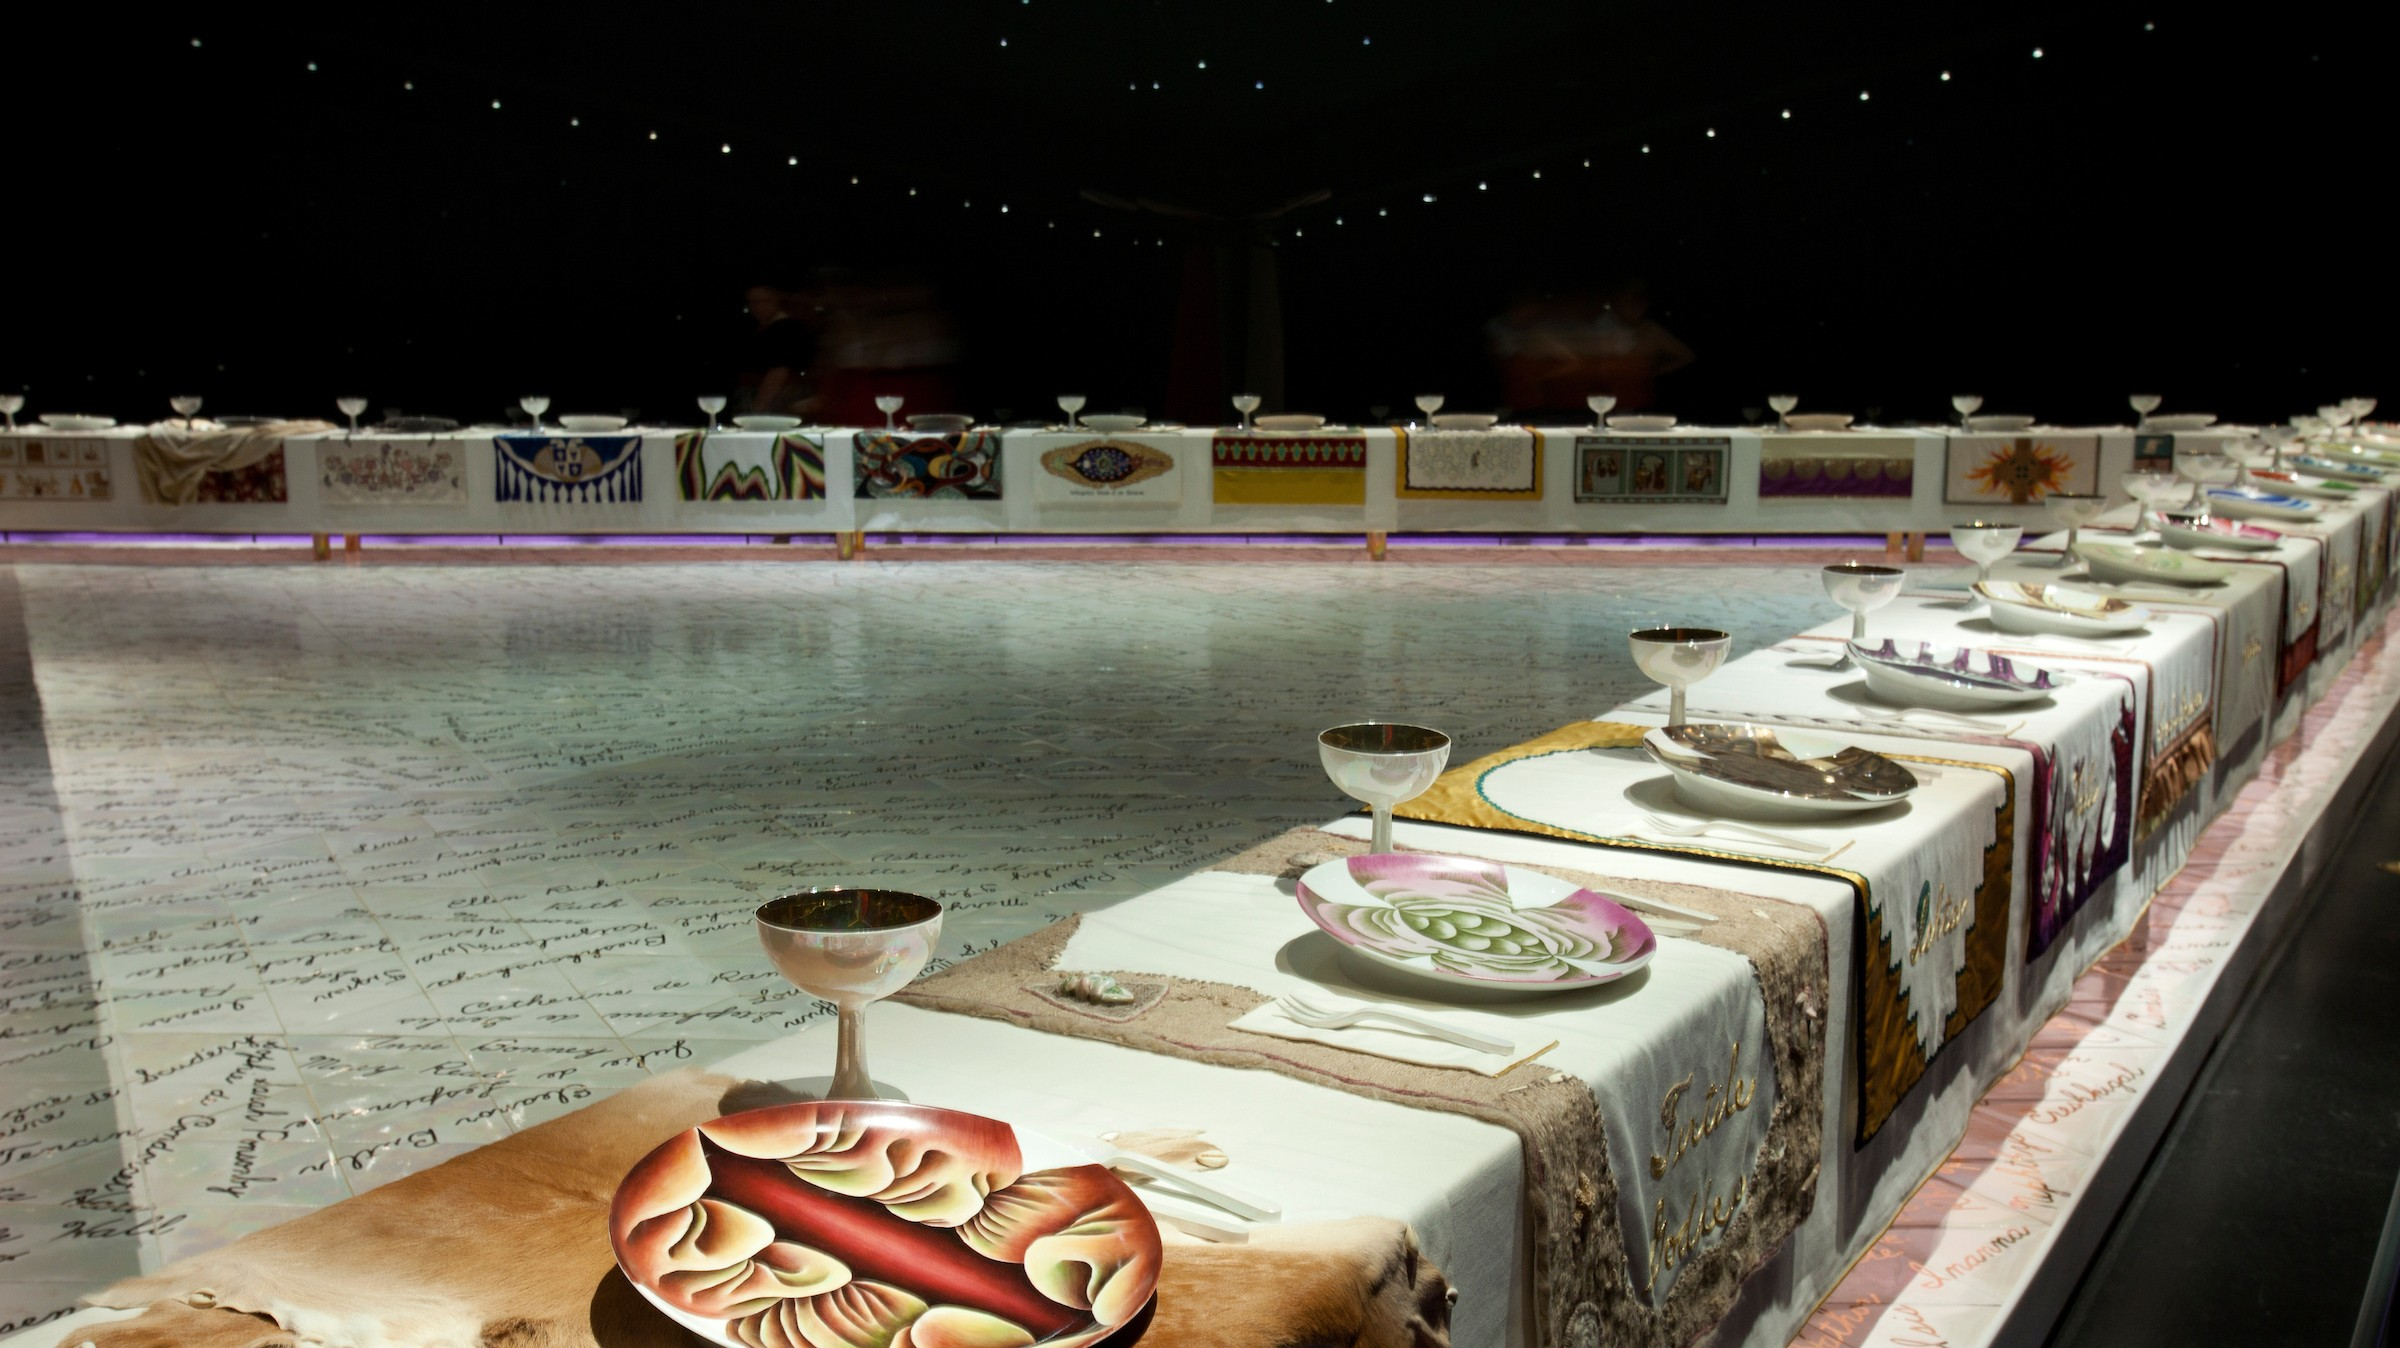 the dinner party judy chicago When judy chicago unveiled the dinner party in san francisco in 1979, she turned the art world upside down with the first epic work for the feminist art movement around an equilateral triangle table, she crafted elaborate place settings for 39 female figures from the history of western.